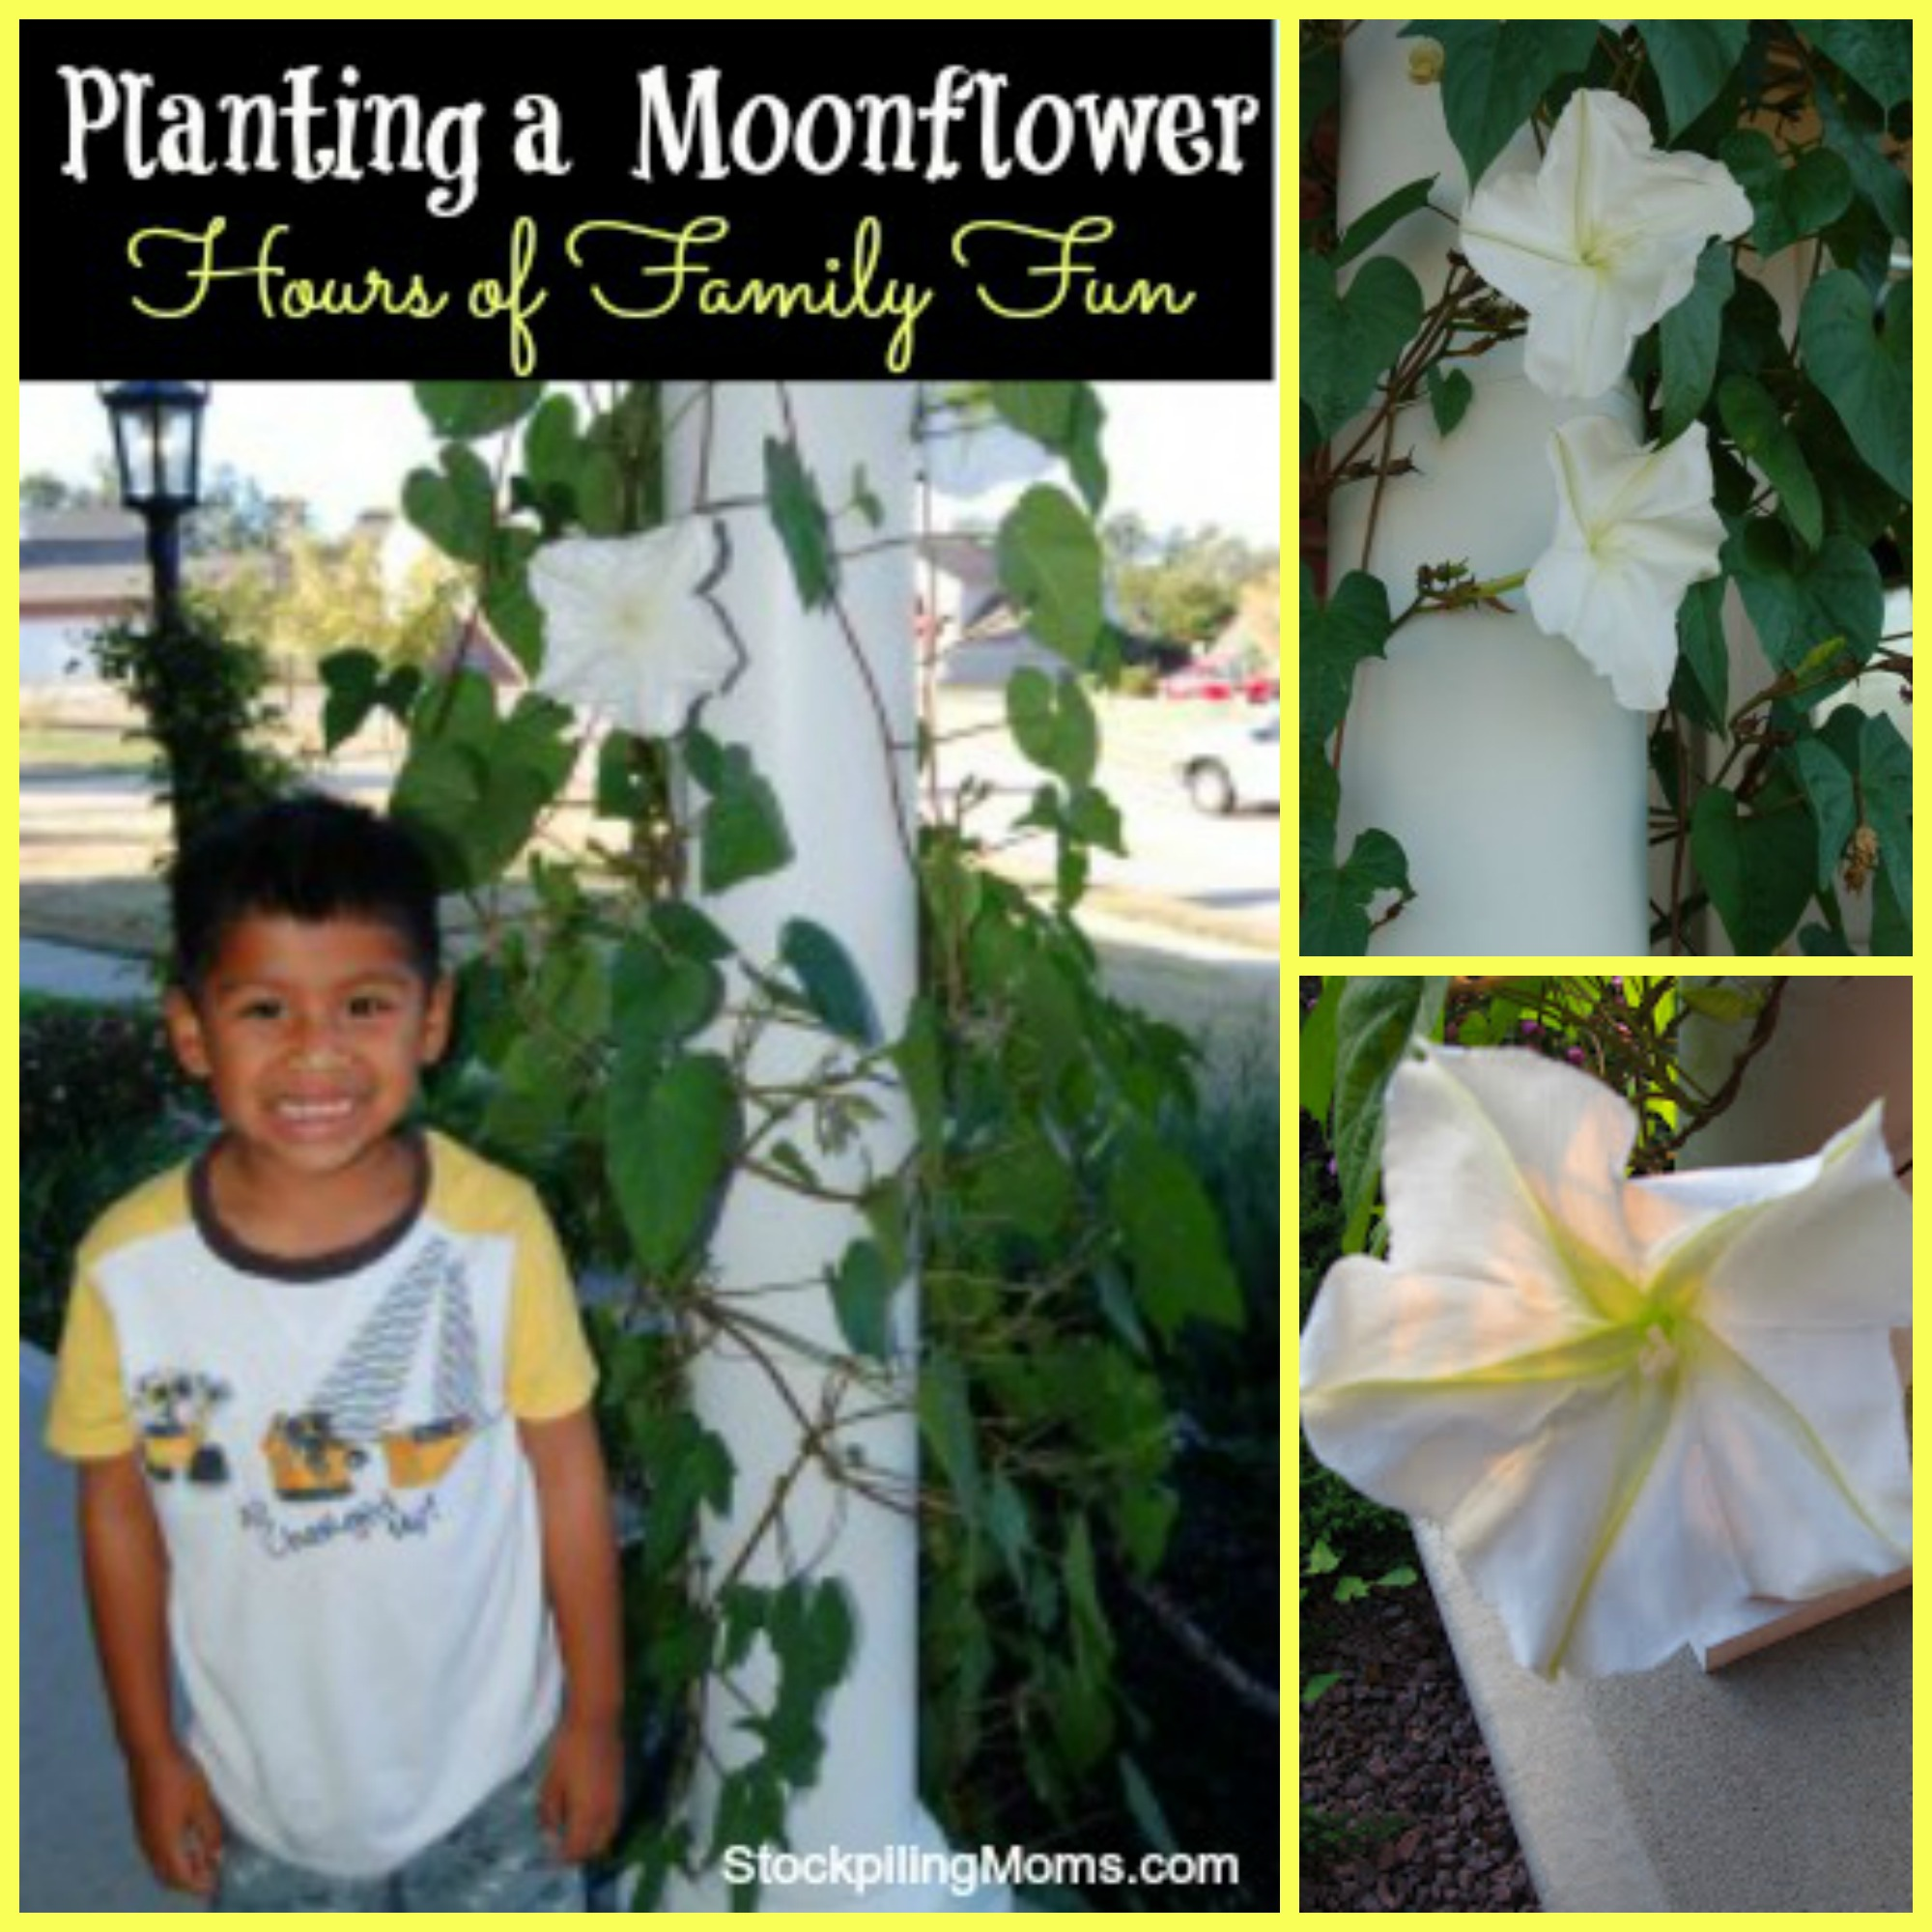 Planting a Moonflower = Hours of Family Fun